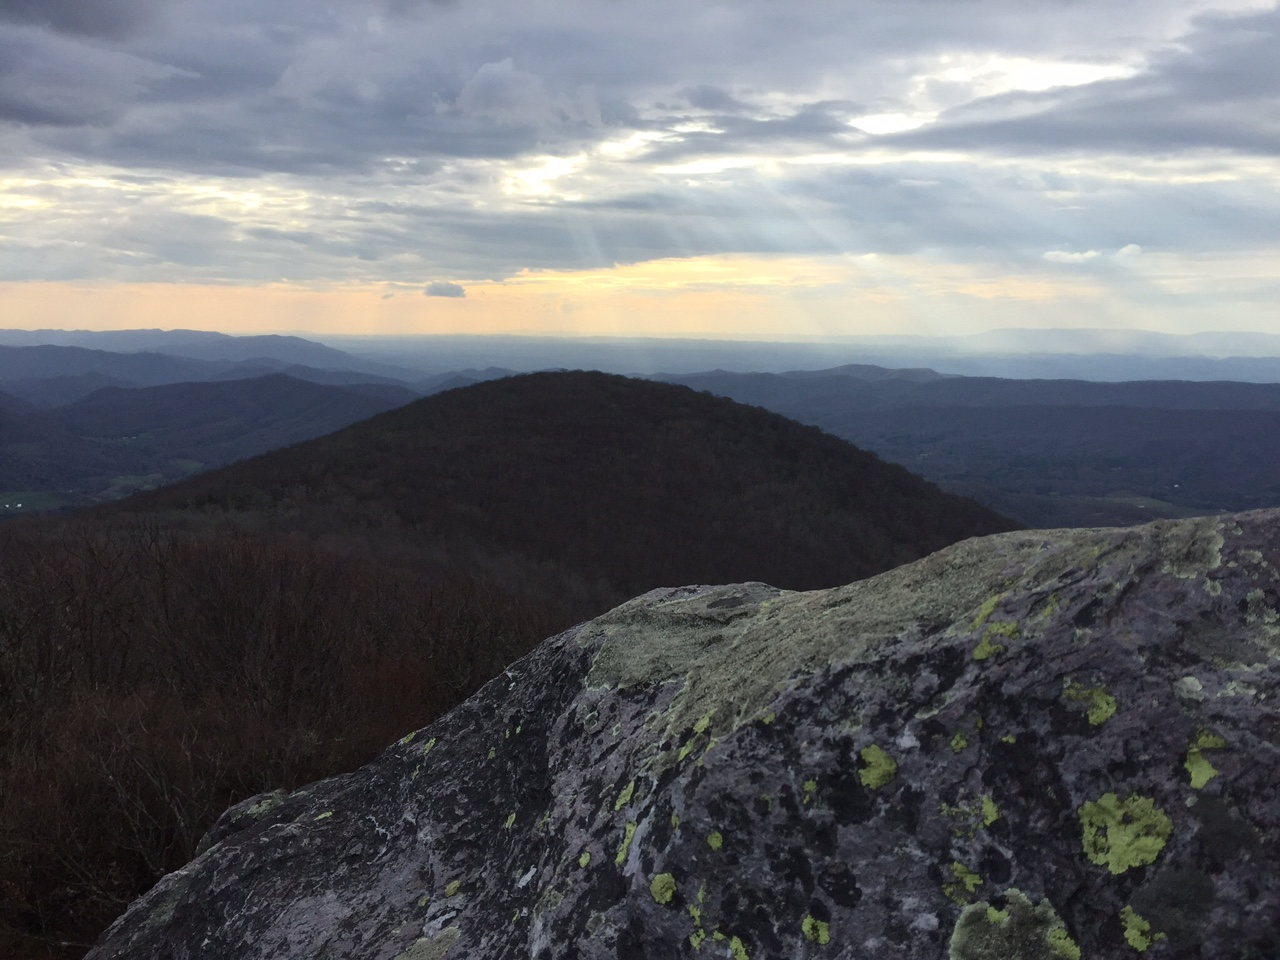 The sun behind the clouds on Buzzard Rock